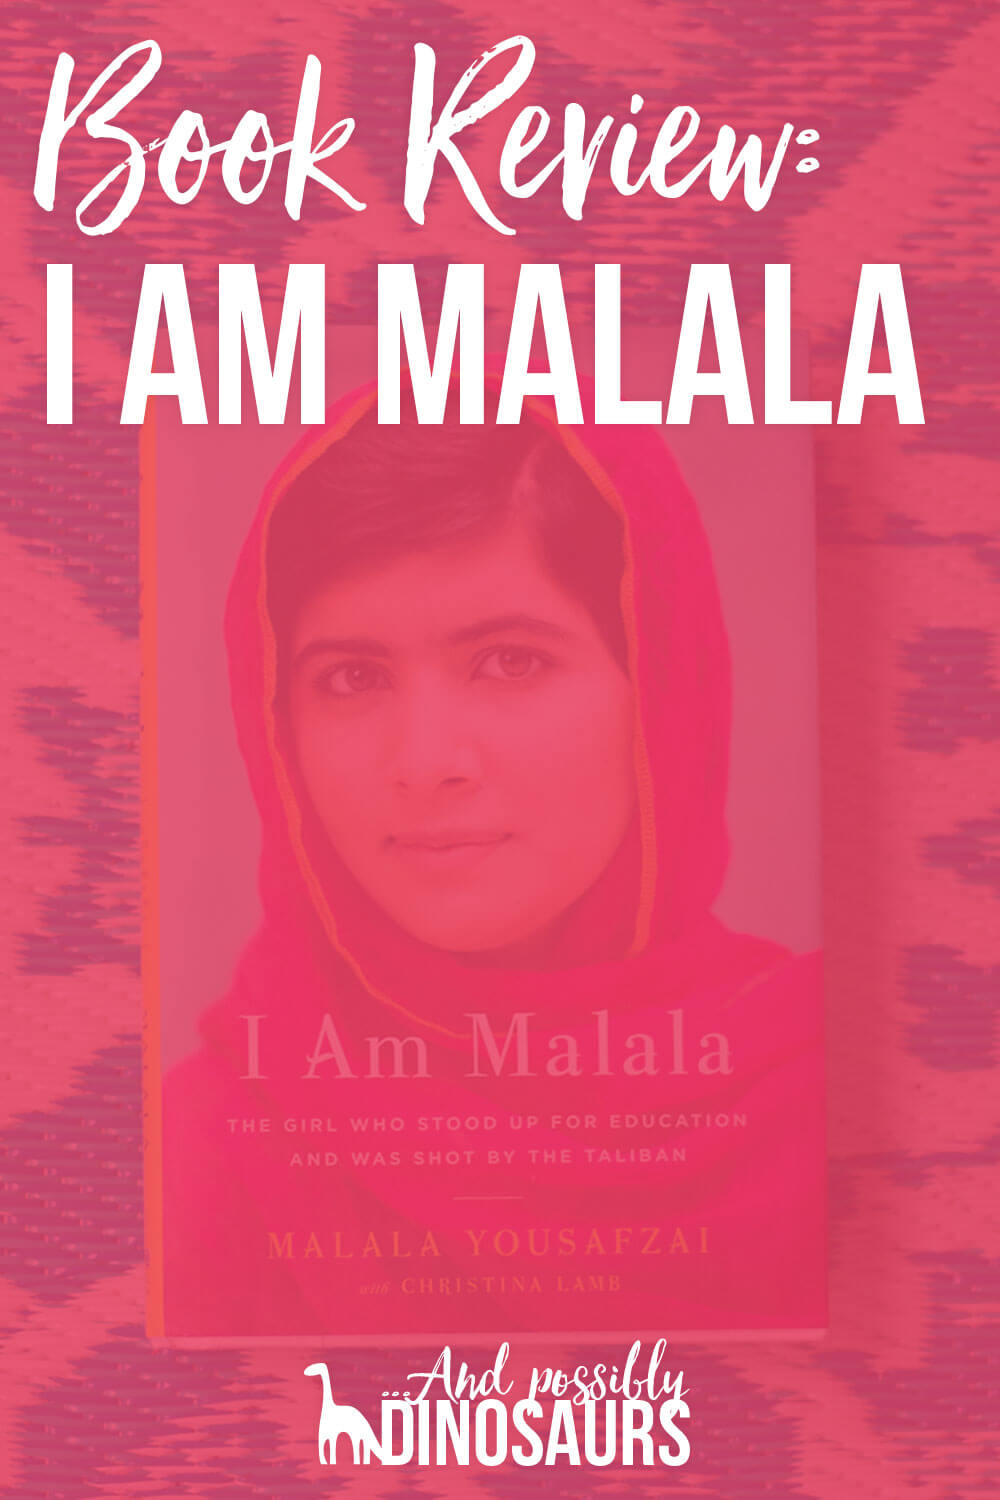 i am malala book review Malala yousafzai has become a symbol of hope for millions around the world the youngest ever nominee of the nobel peace, she tells the story of her struggles and dreams in her bestselling autobiography.